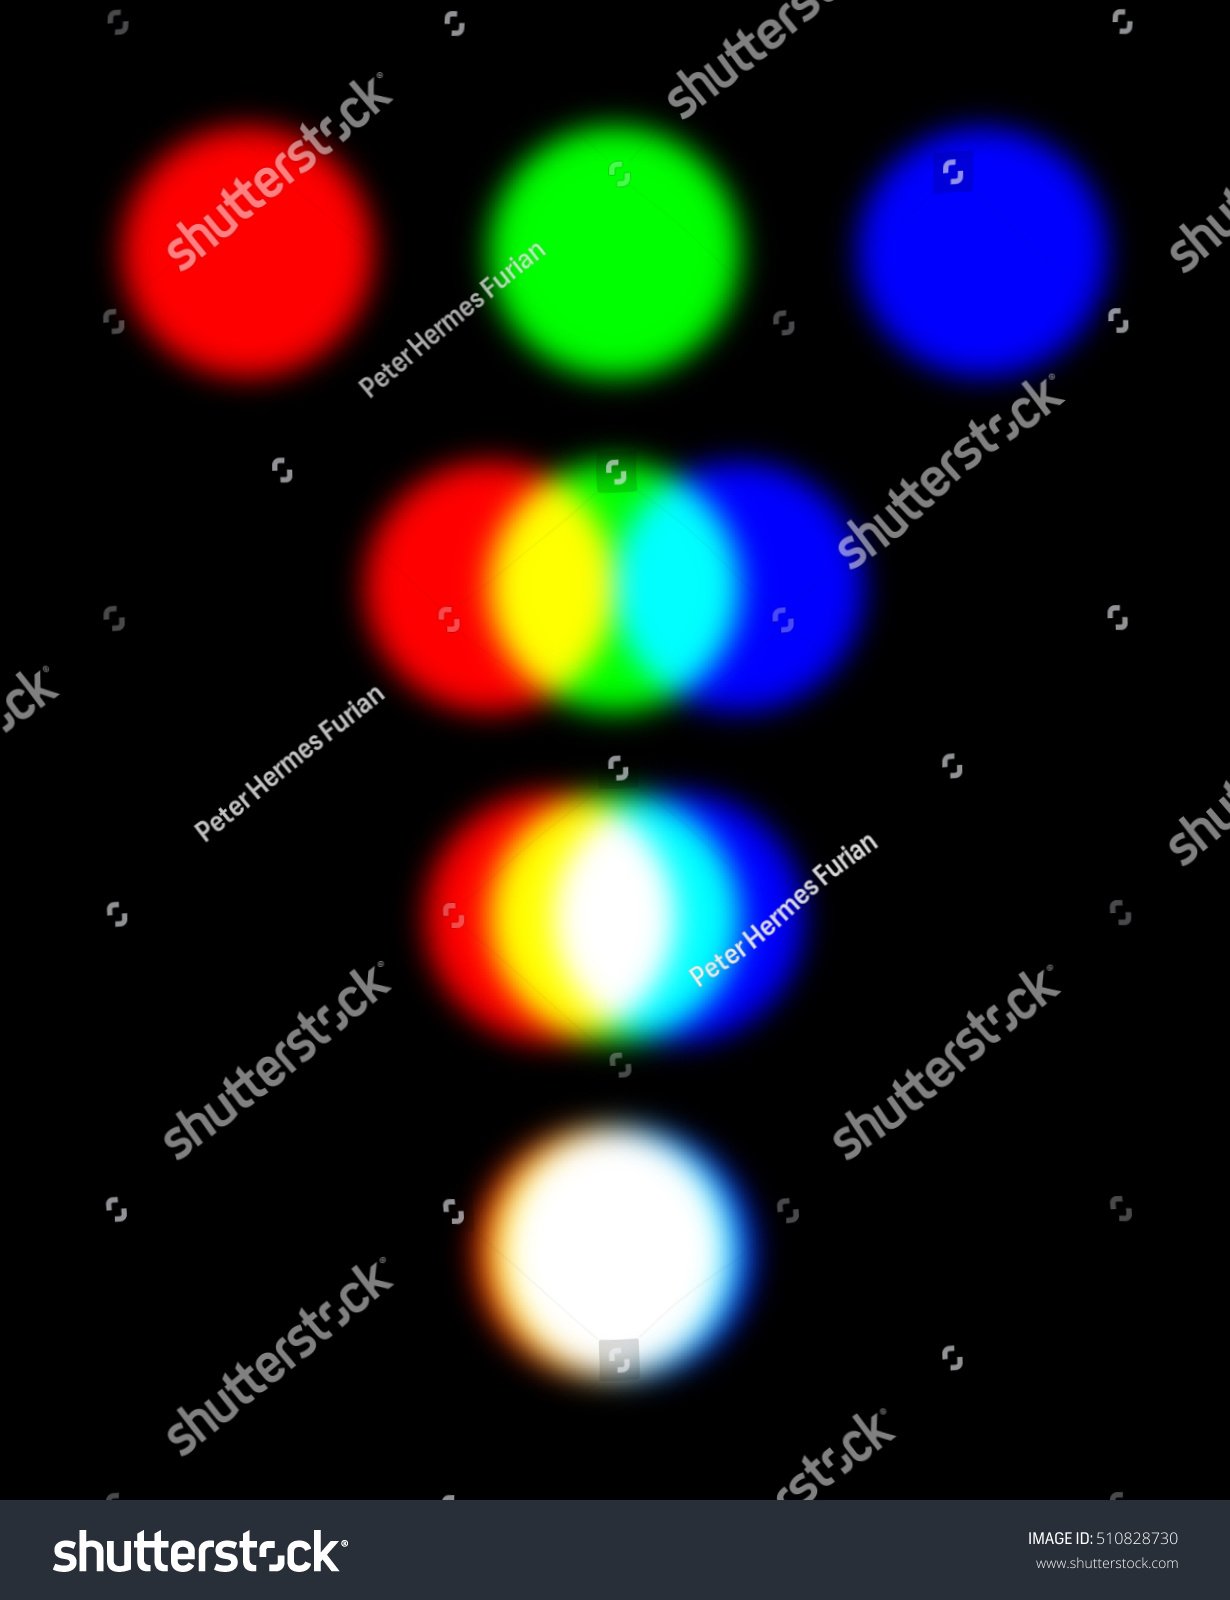 Rgb color model three overlapping spotlights stock illustration rgb color model with three overlapping spotlights representing the additive color mixing model the combination geenschuldenfo Image collections